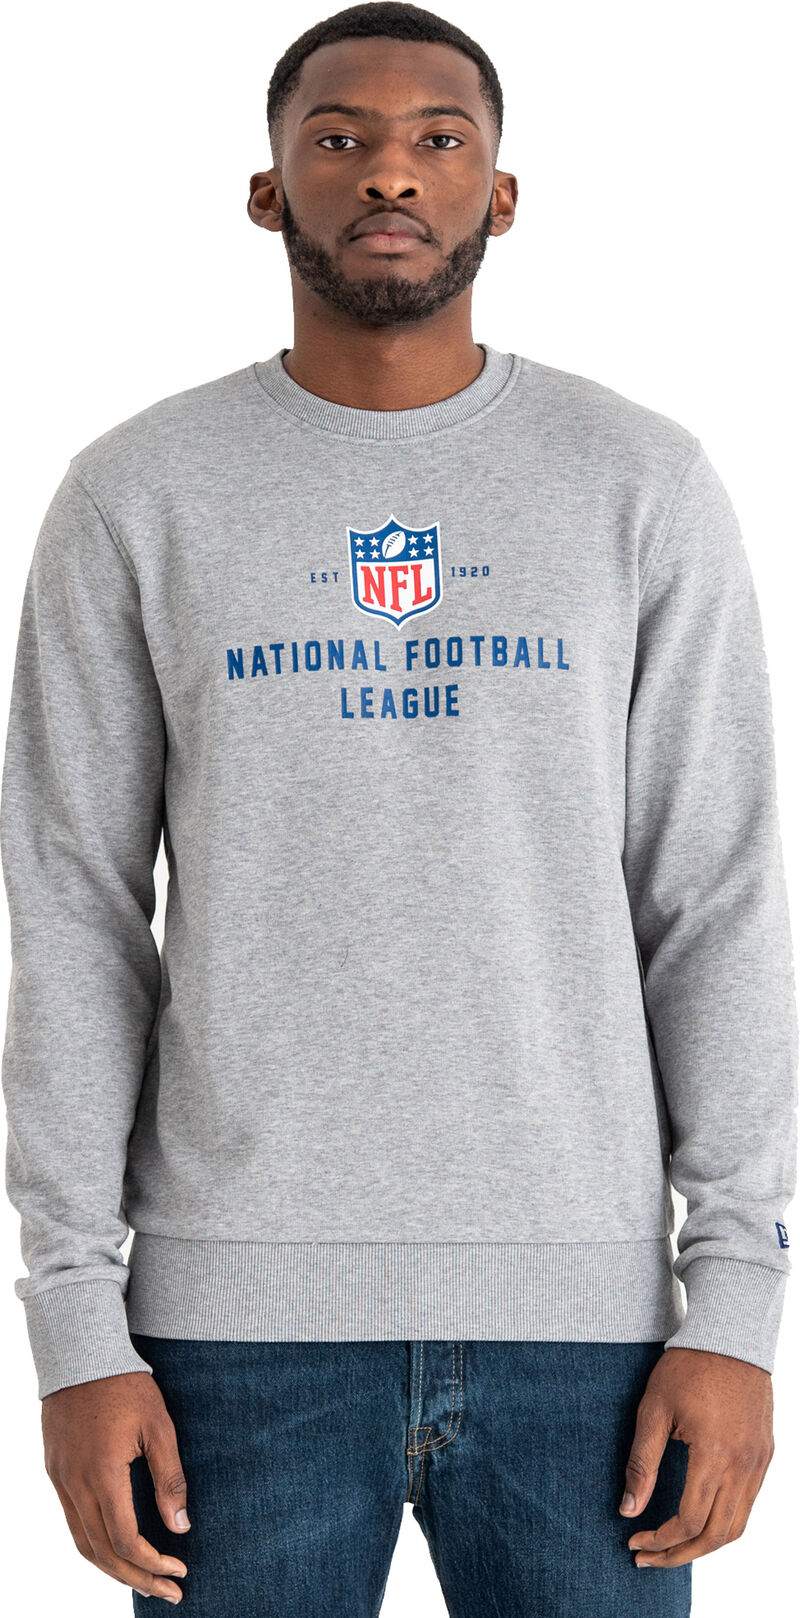 MBL League Established NFL Generic Logo